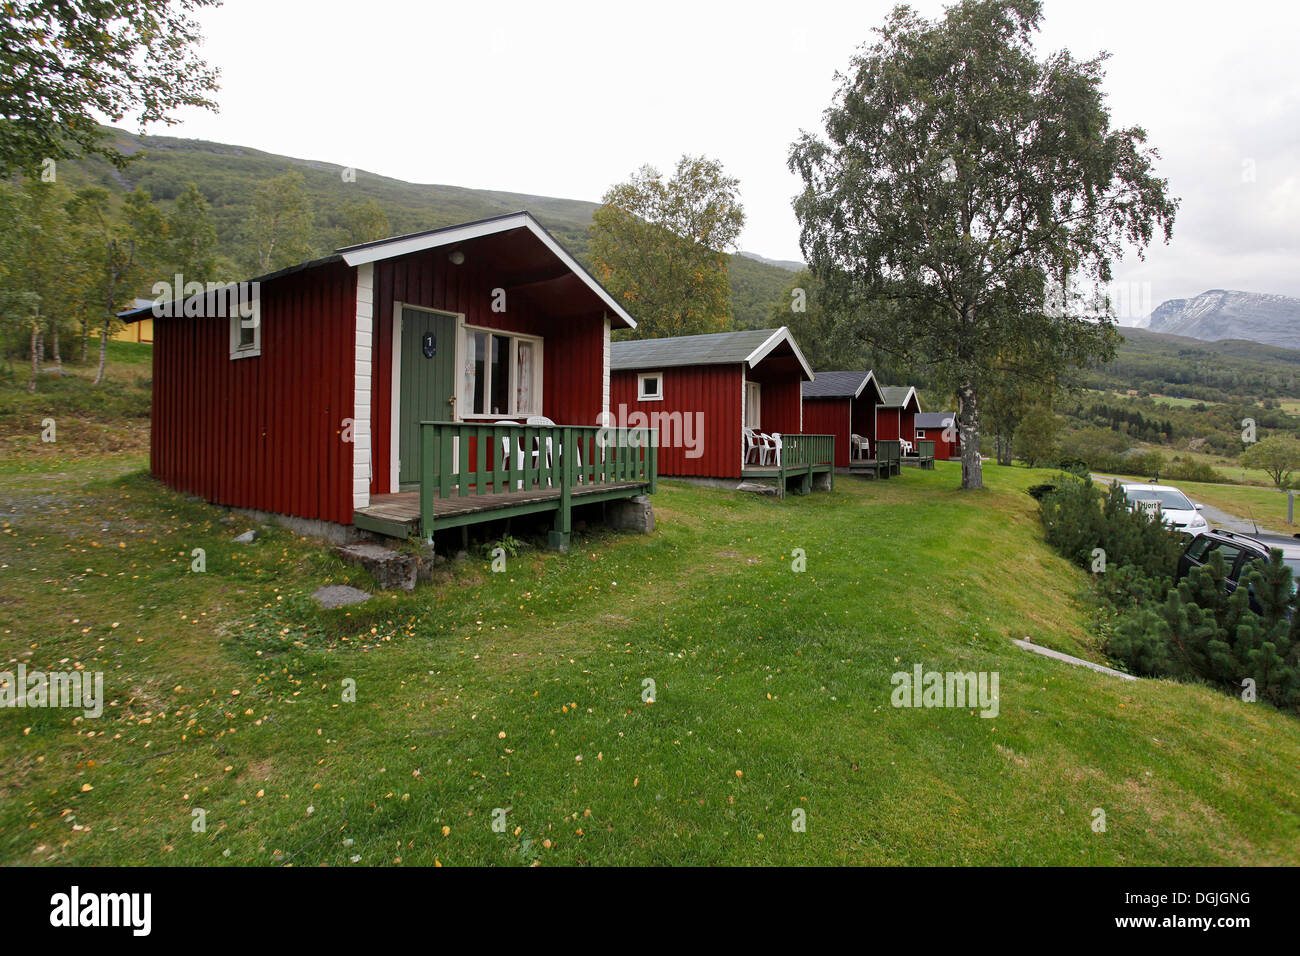 Cabins at a camping site near Geiranger Fjord, Møre og Romsdal, Norway, Northern Europe - Stock Image